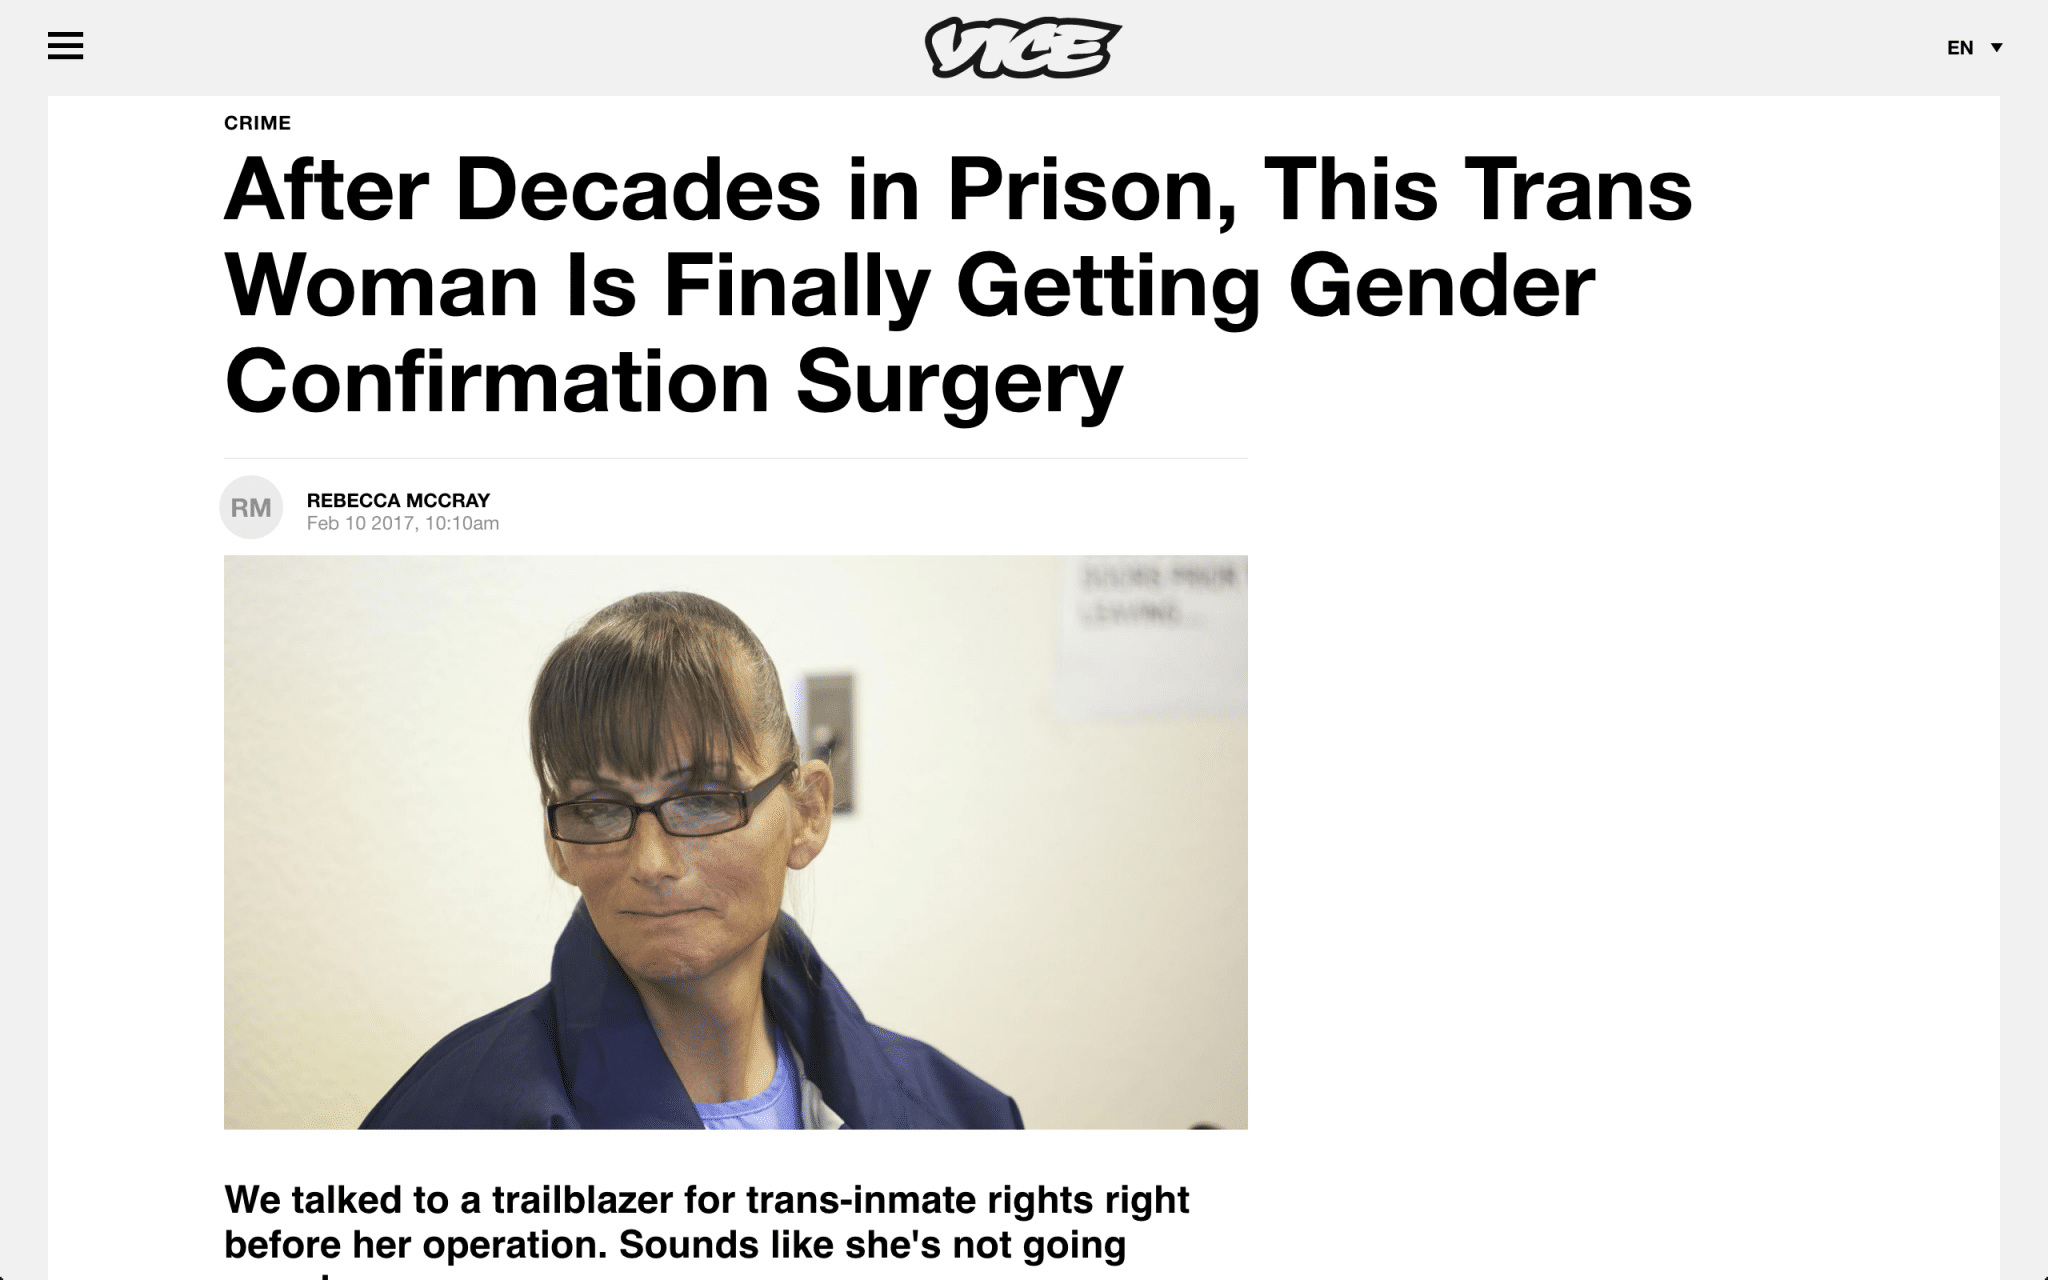 """df3f9cc0355 From the Article: """"Norsworthy is ready to keep pushing for the rights of  trans women. After her surgery, she looks forward to opening Joan's House,  ..."""